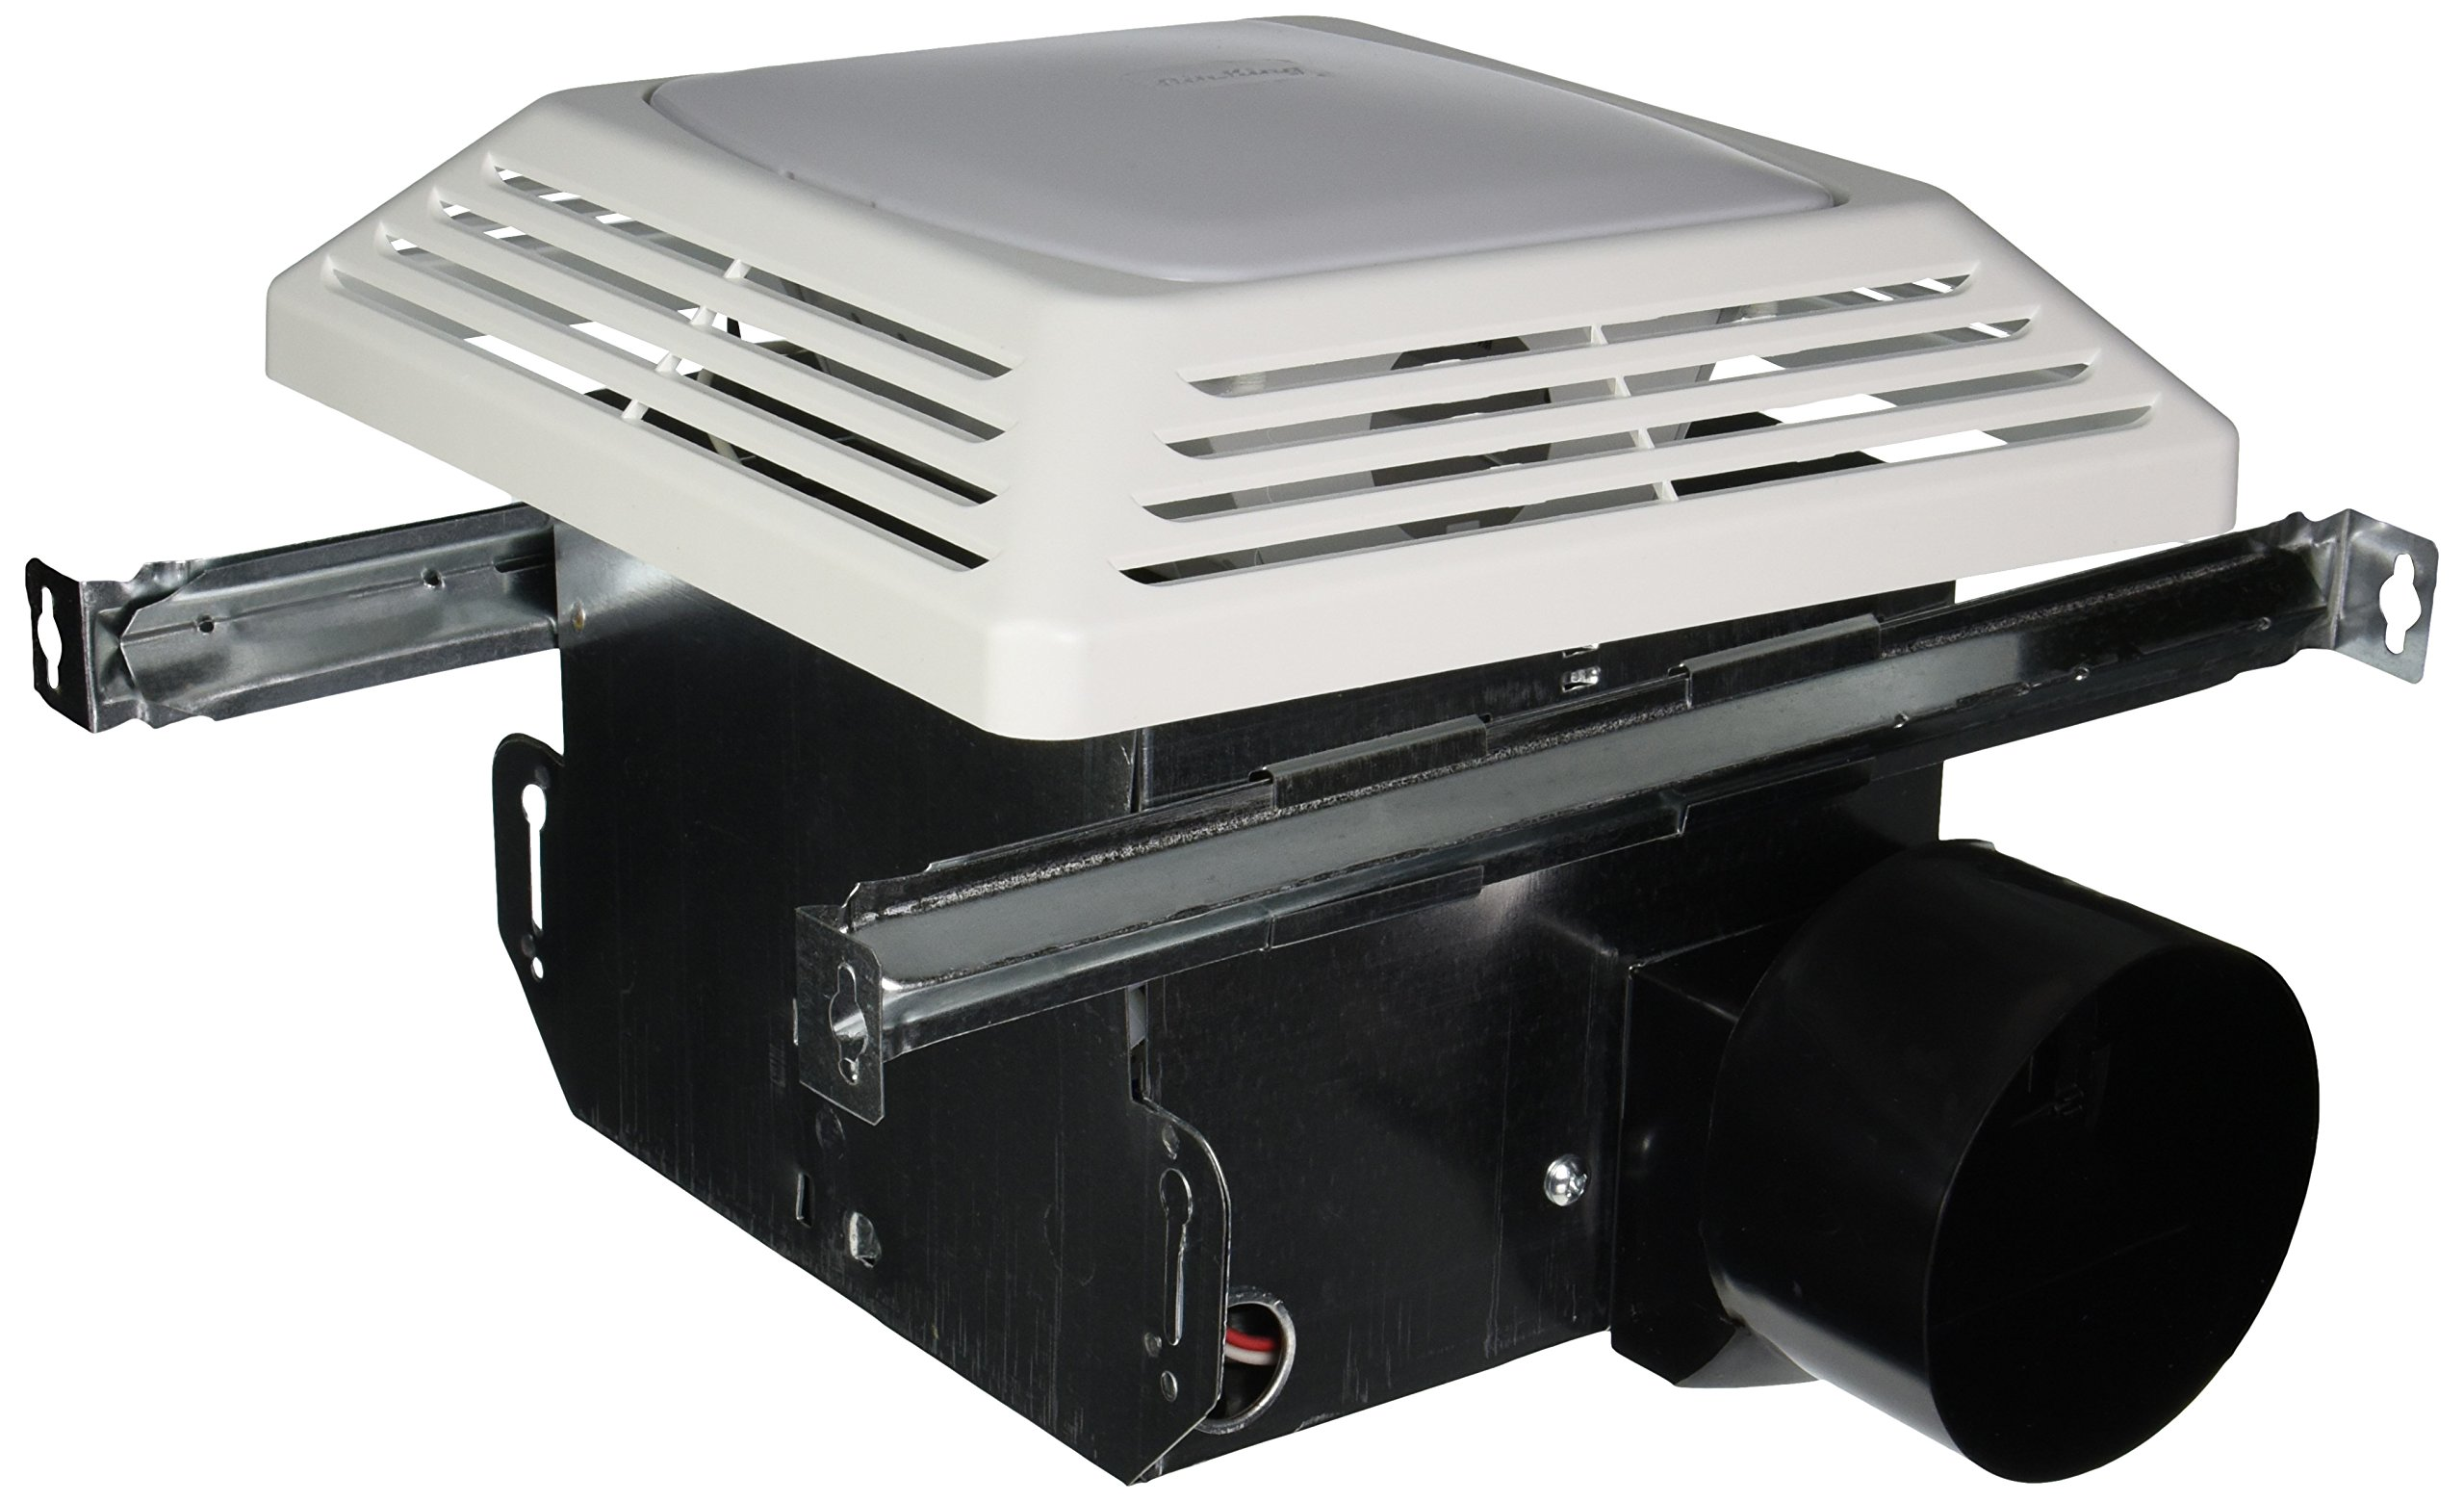 Air King ASLC50 Advantage Exhaust Bath Fan with Light, White Finish